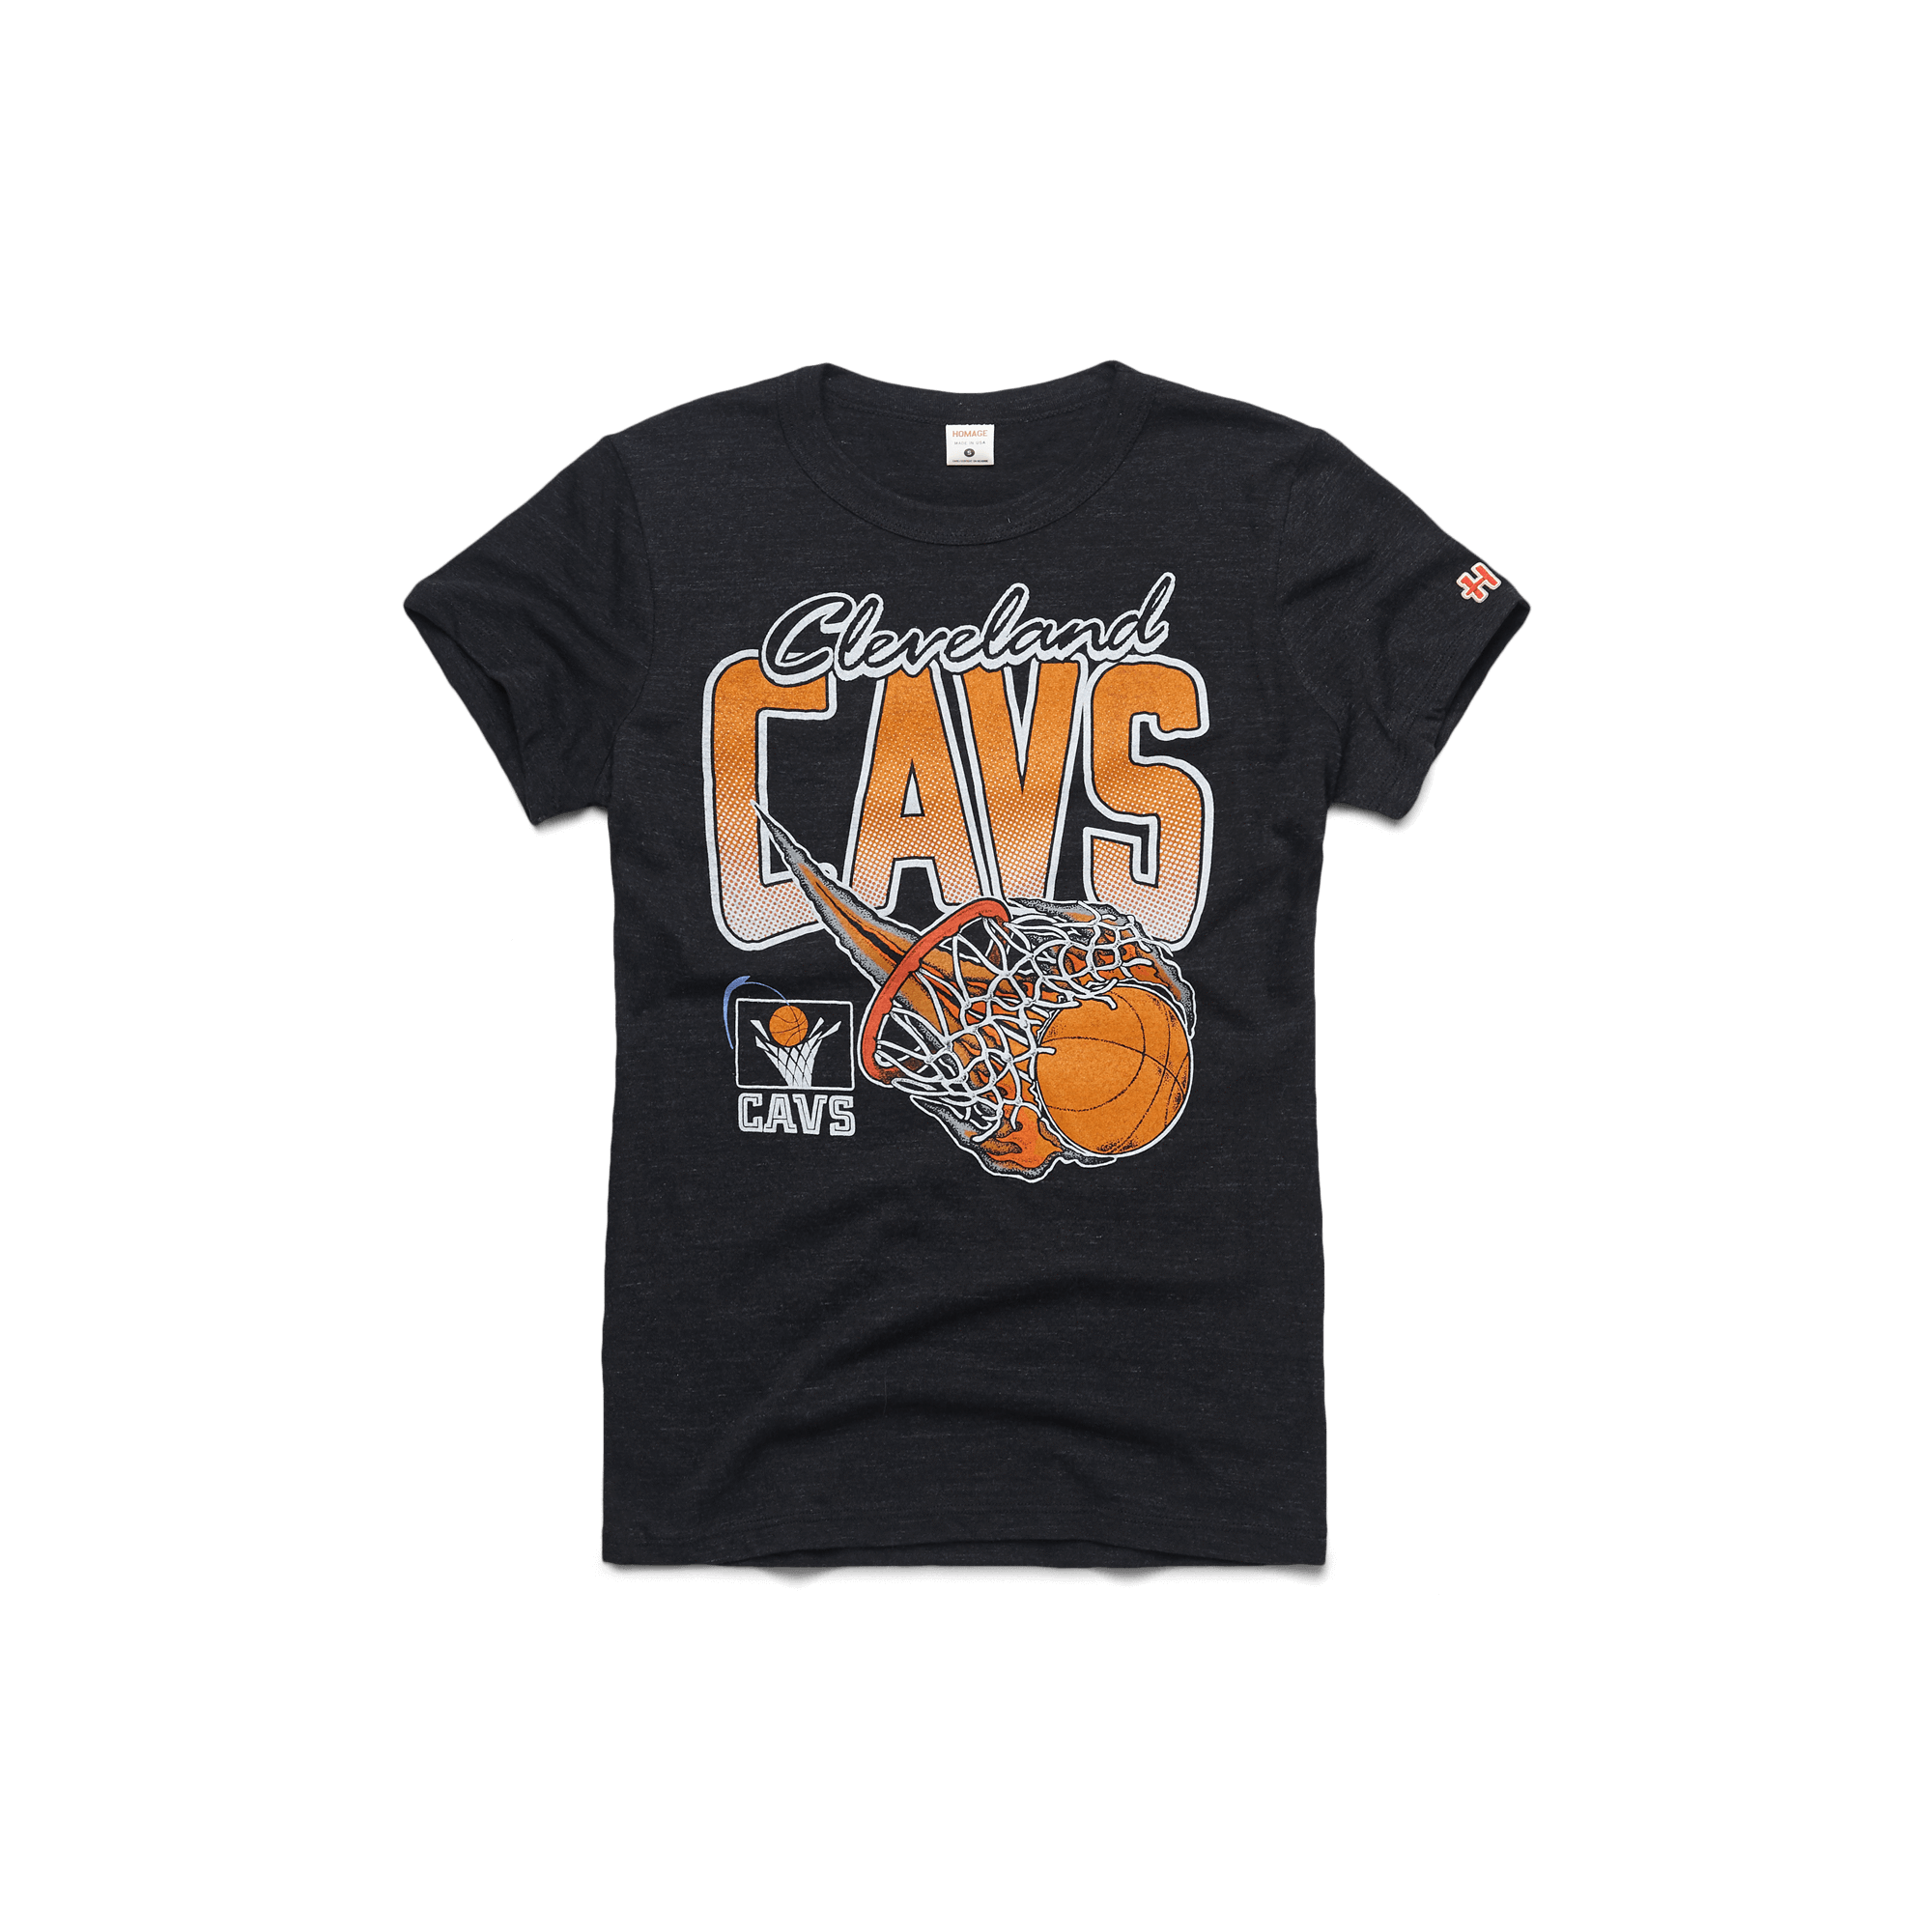 cd584c82933 Retro Cleveland Cavs Officially Licensed NBA Cavaliers Apparel – HOMAGE